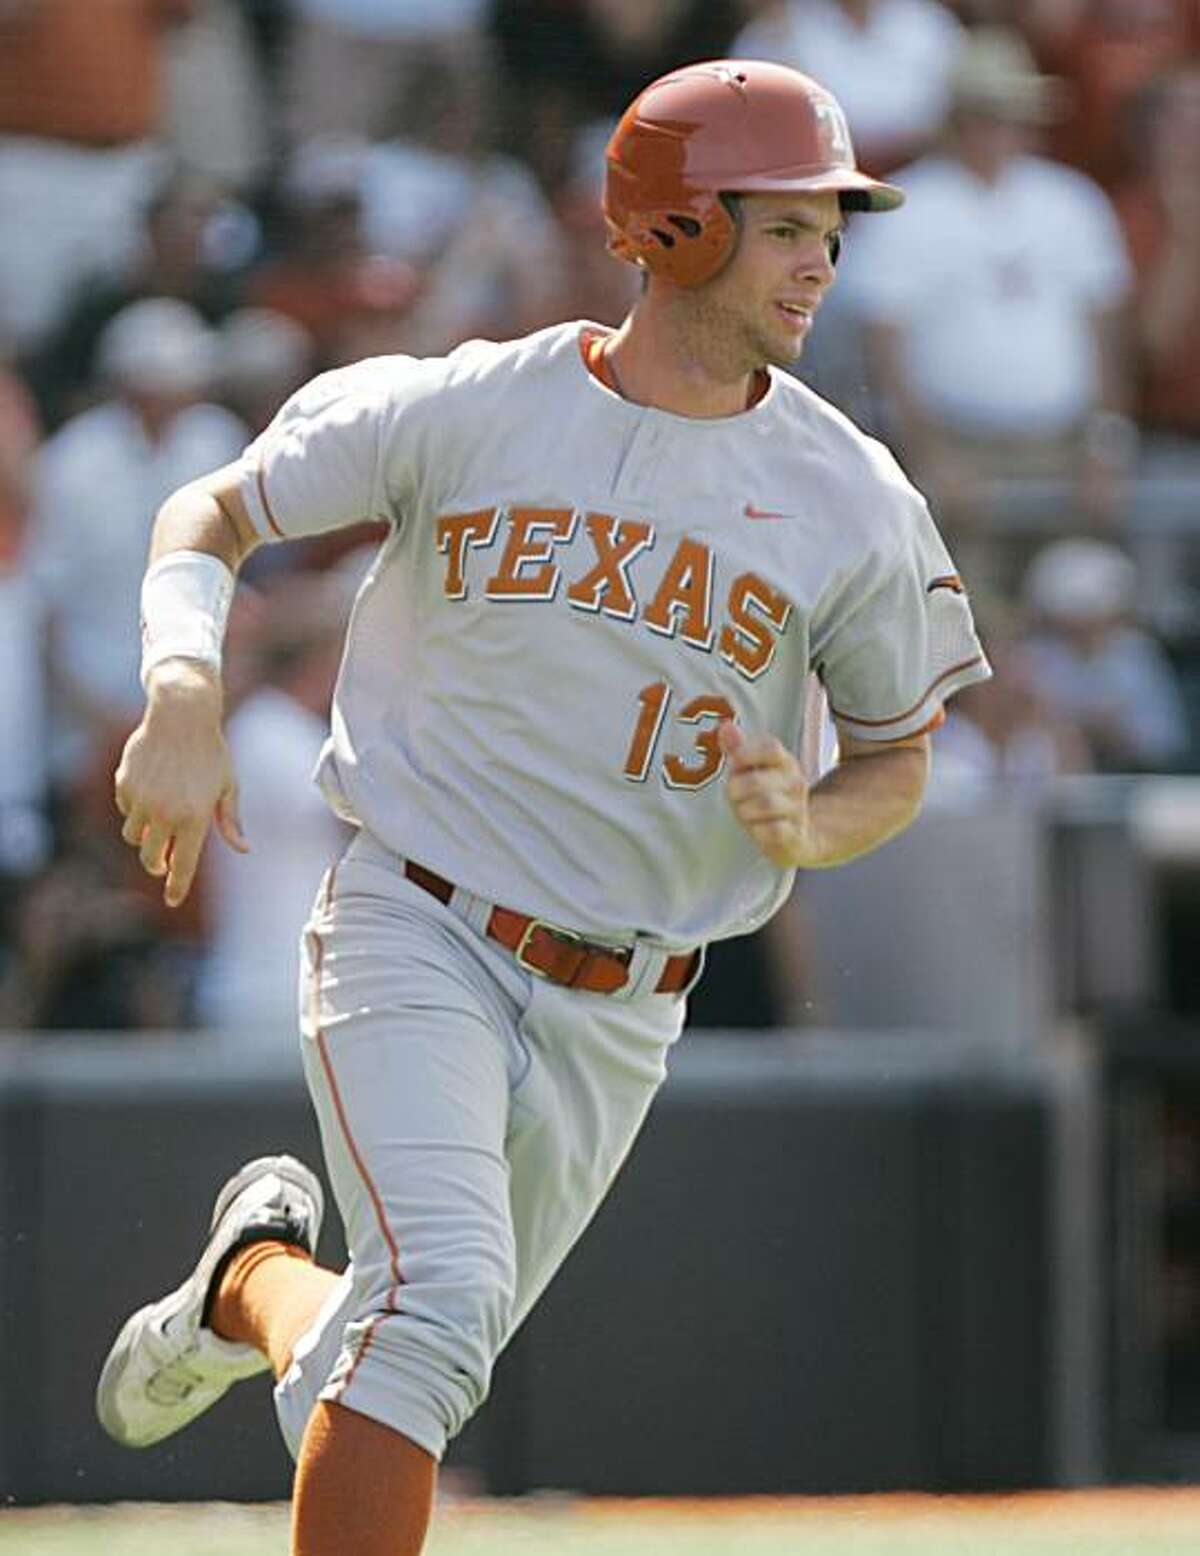 Texas' Brandon Belt runs to first base after hitting an eighth-inning single that drove in a run against TCU in the NCAA college baseball super regionals in Austin, Texas, Sunday, June 7, 2009. TCU won 3-2 to force a third game in the series. (AP Photo/Chris Carson)